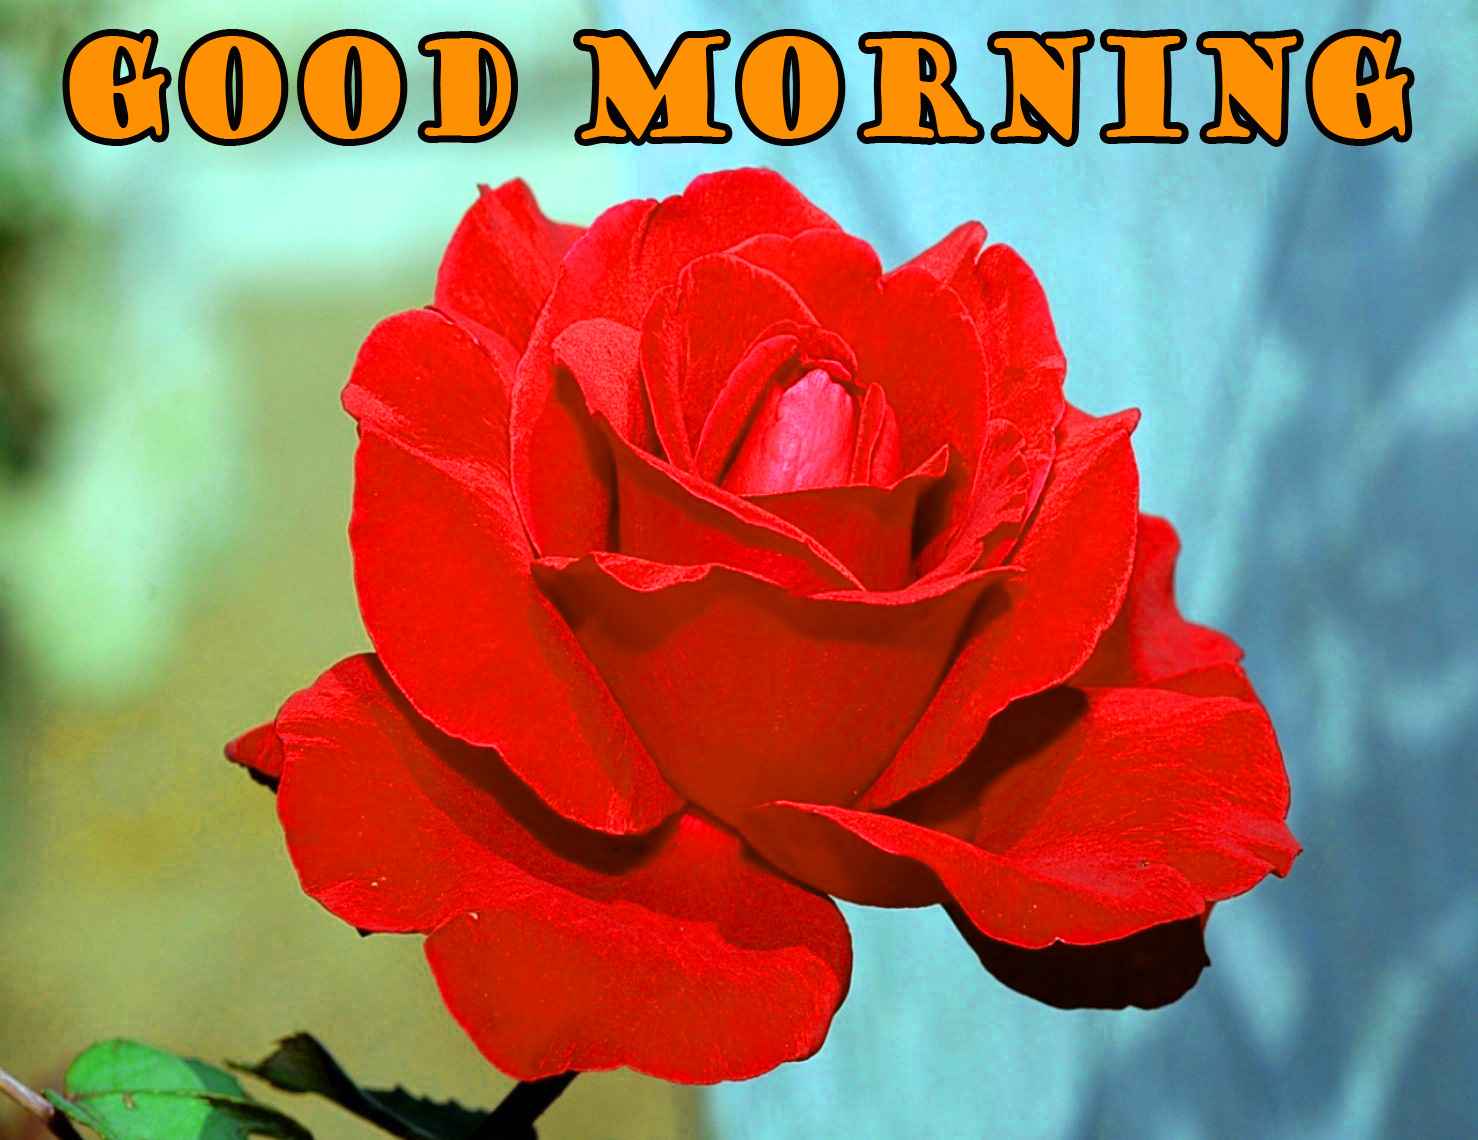 Good Morning Red Rose Photo Images Pictures For Facebook